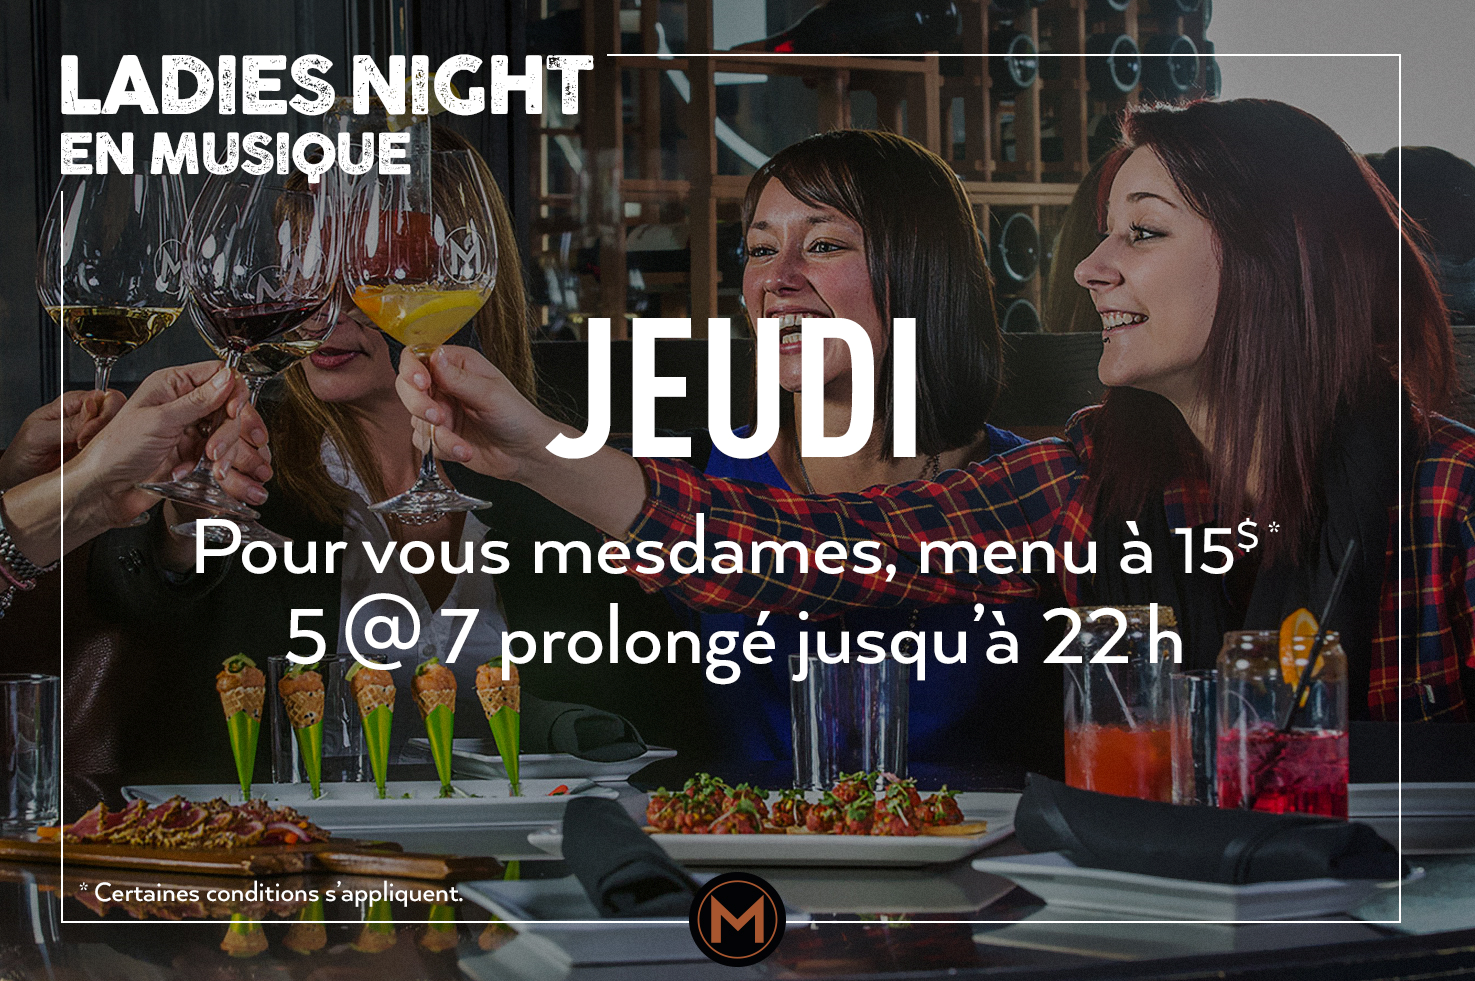 Ladies night en musique